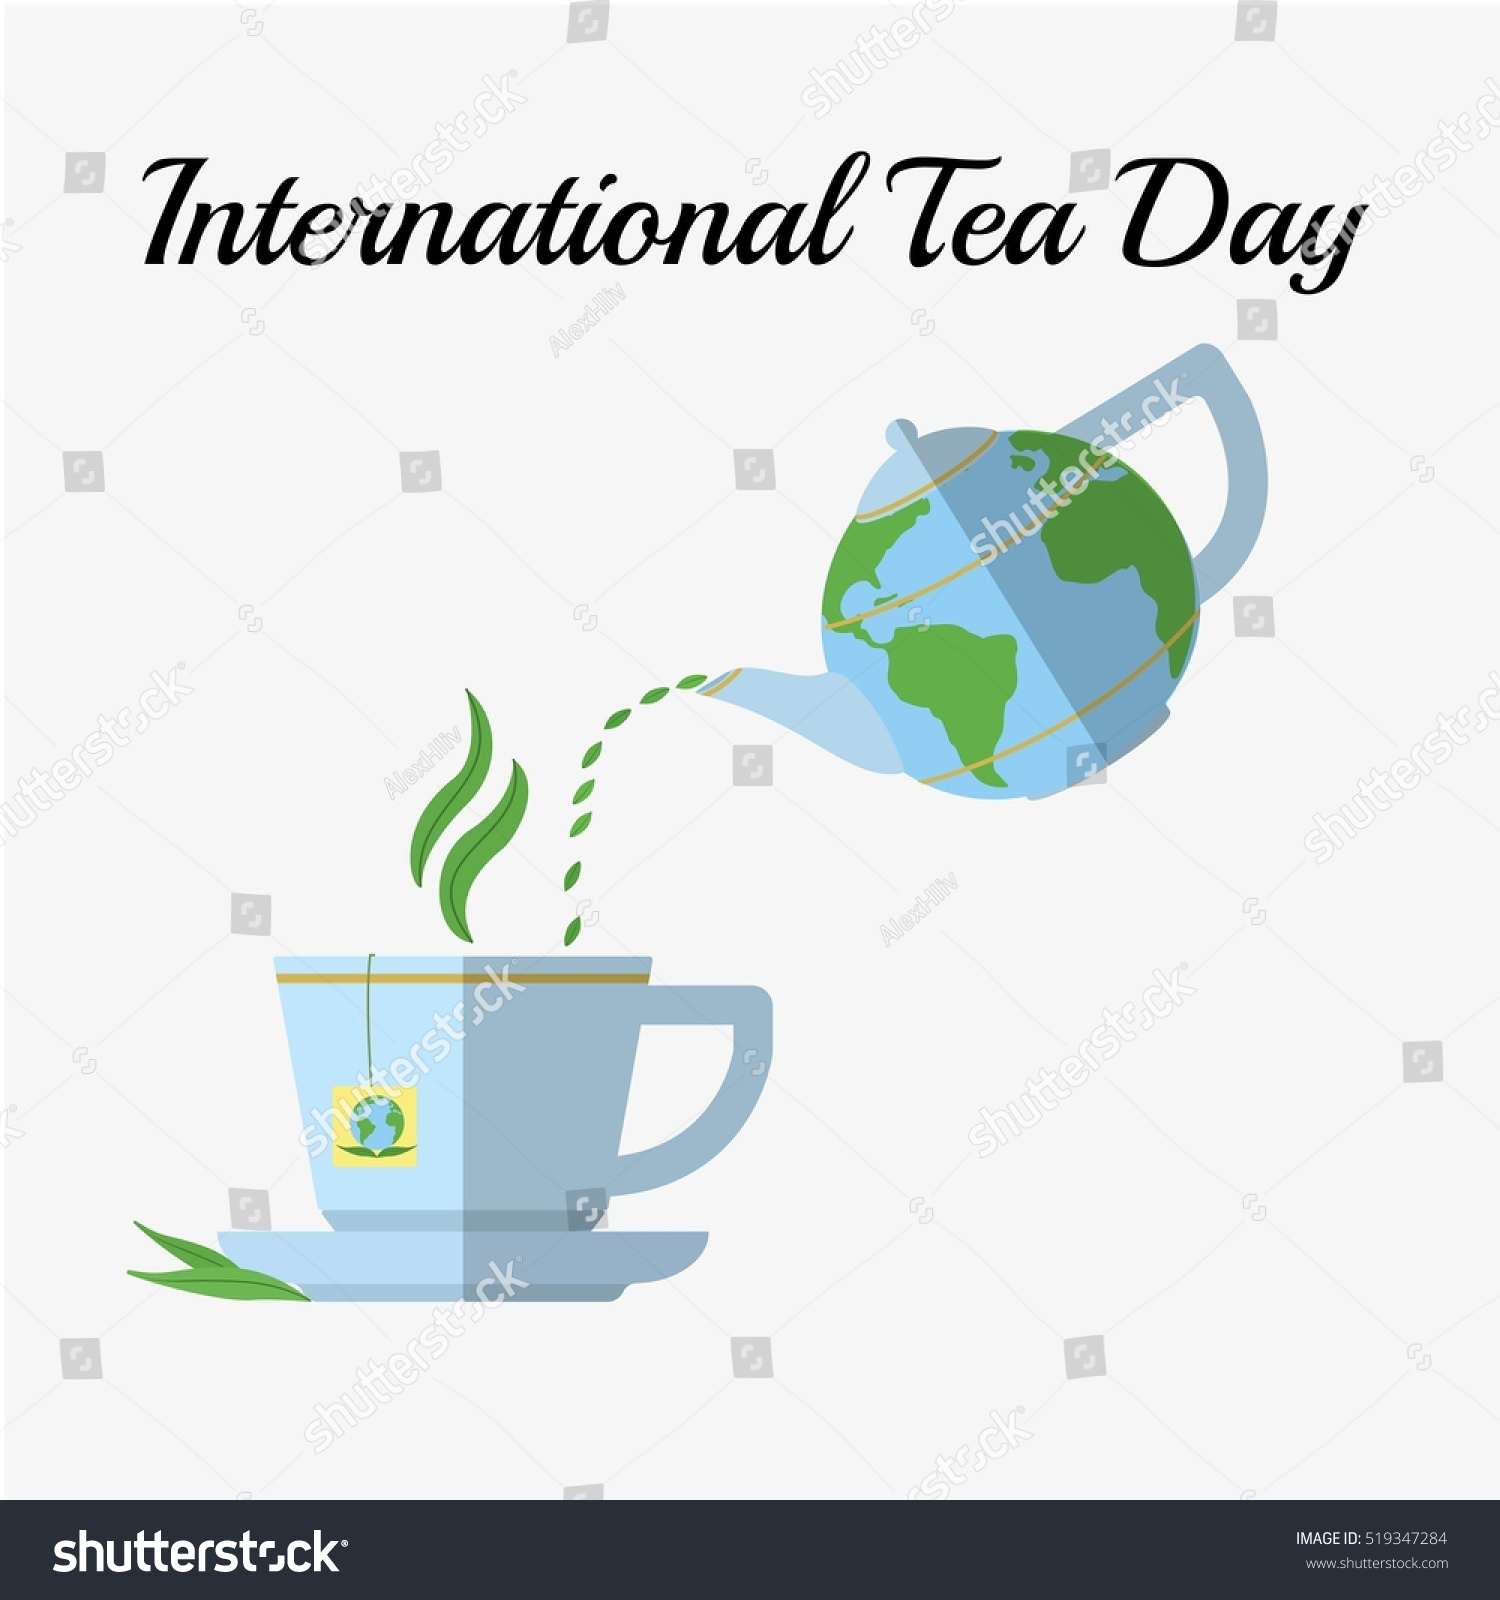 Image result for international tea day